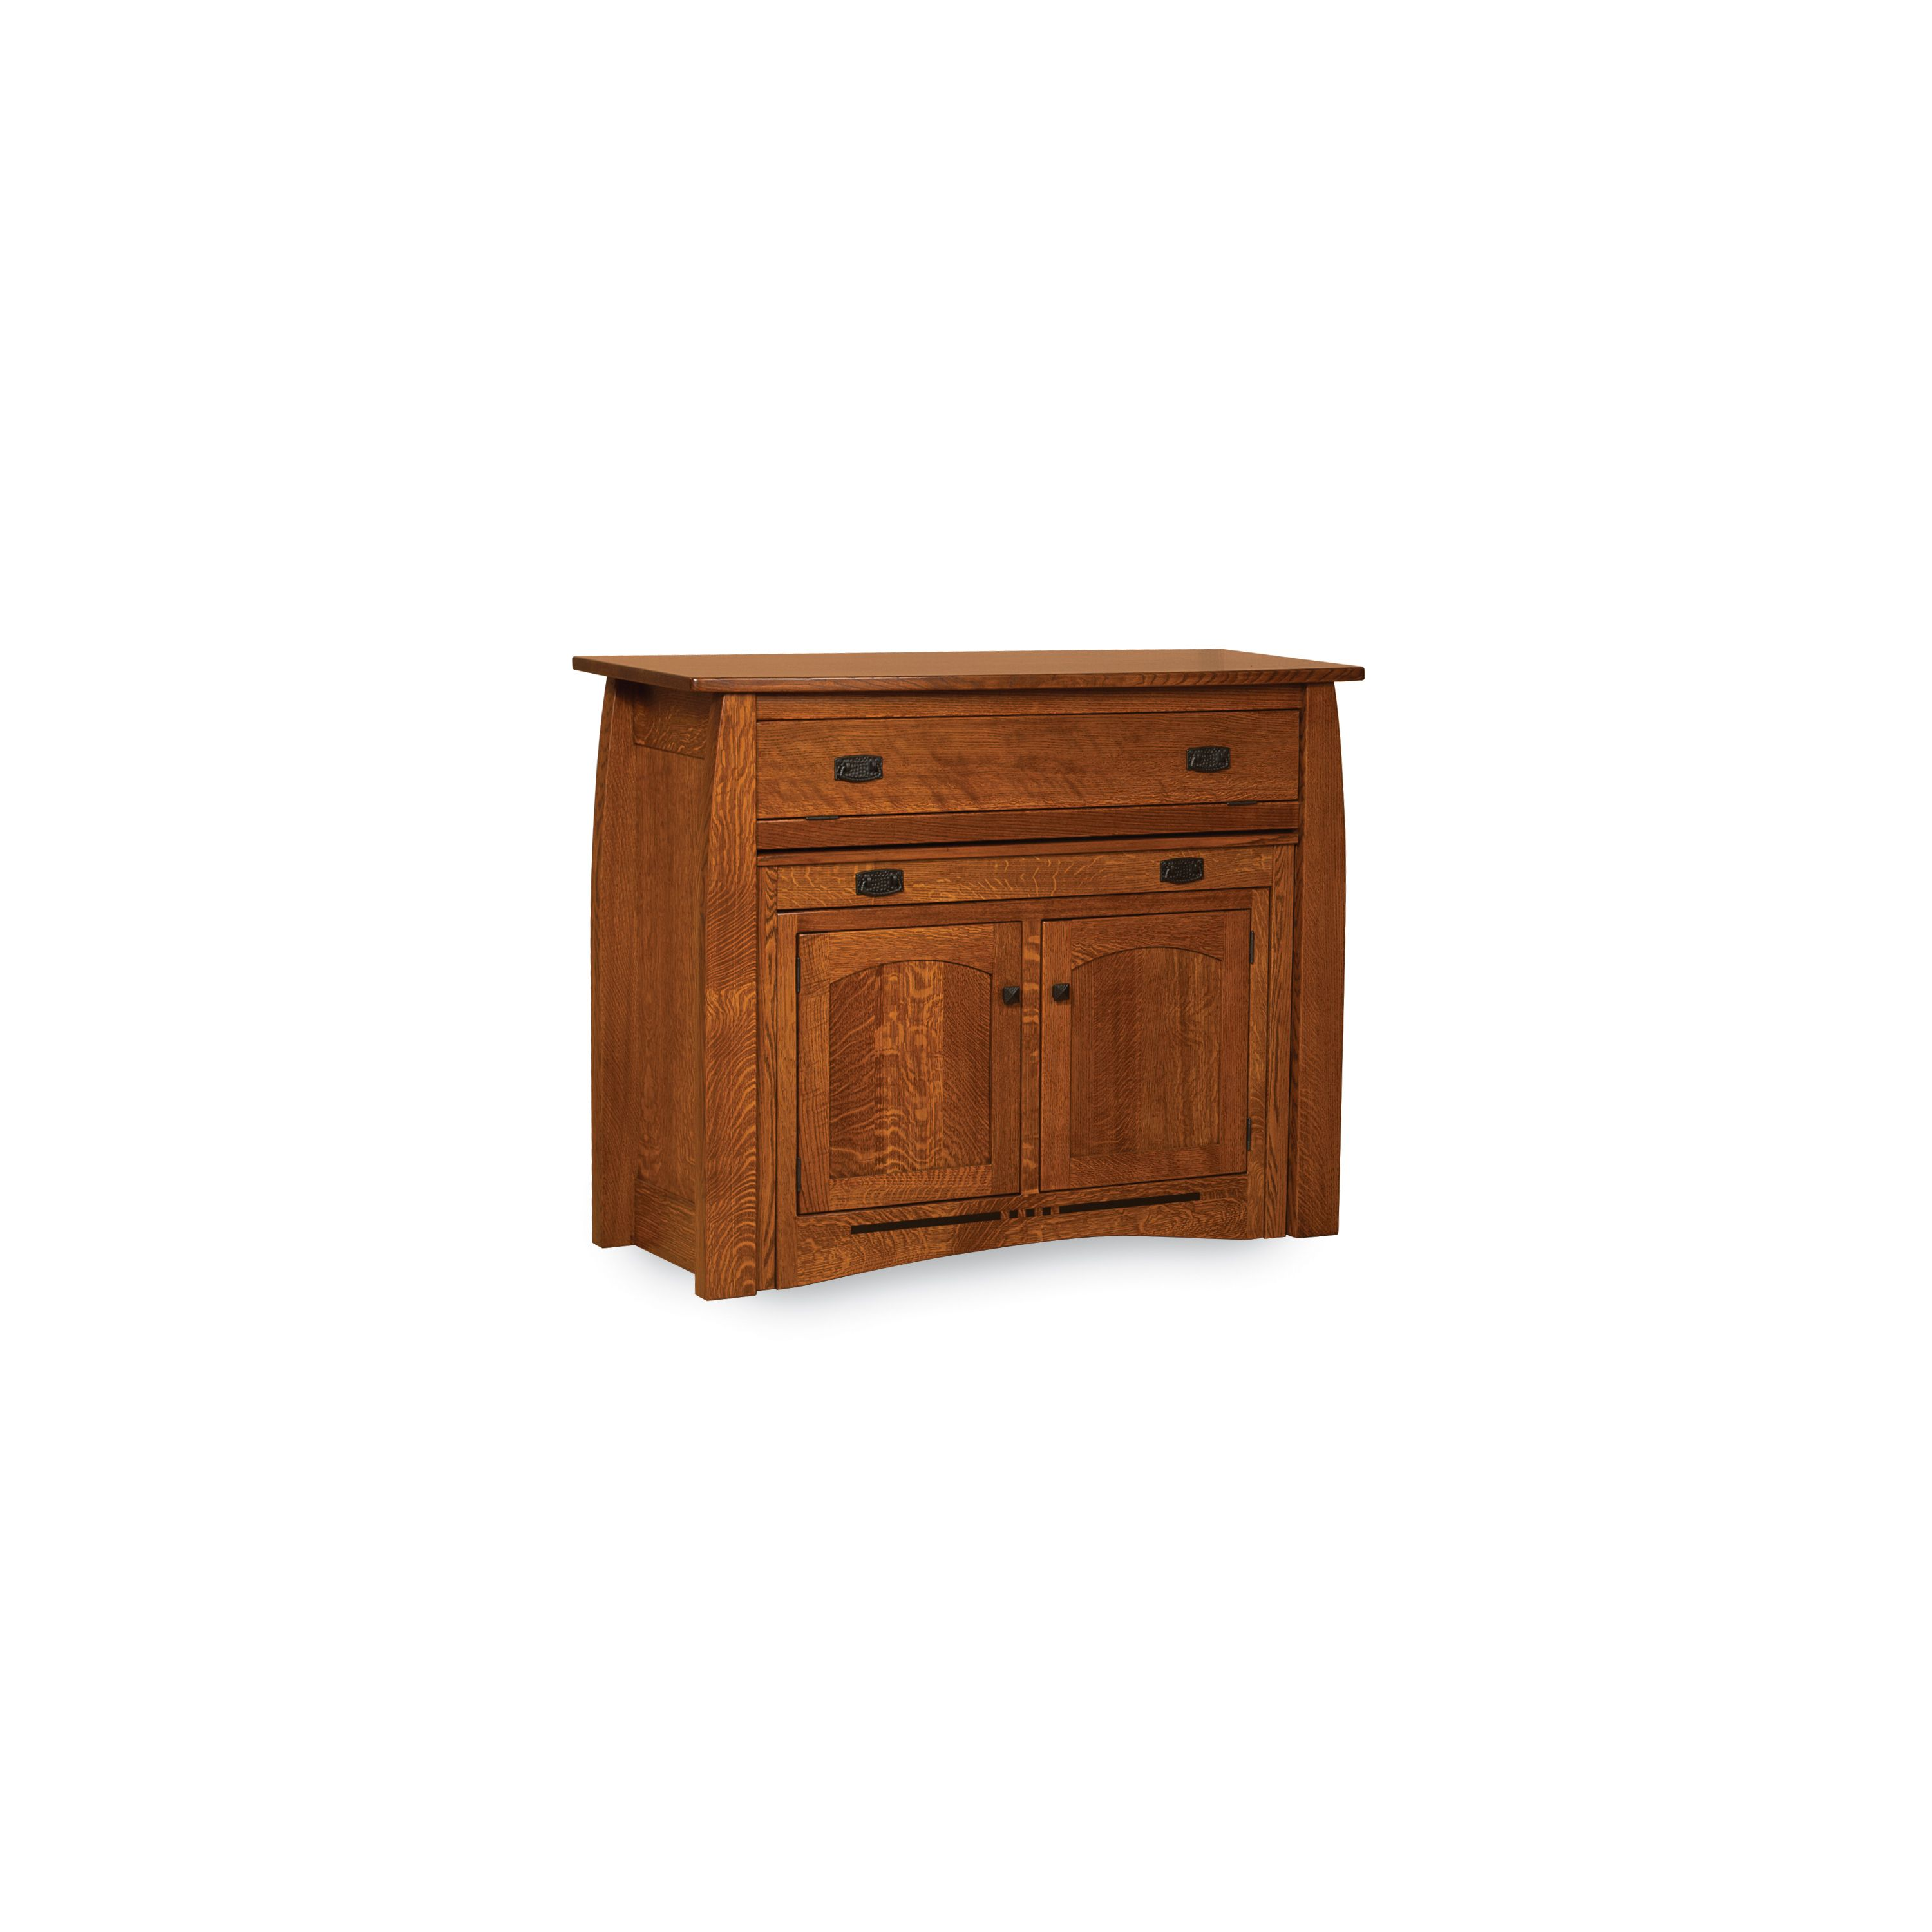 The Colebrook kitchen island is functional times three with its